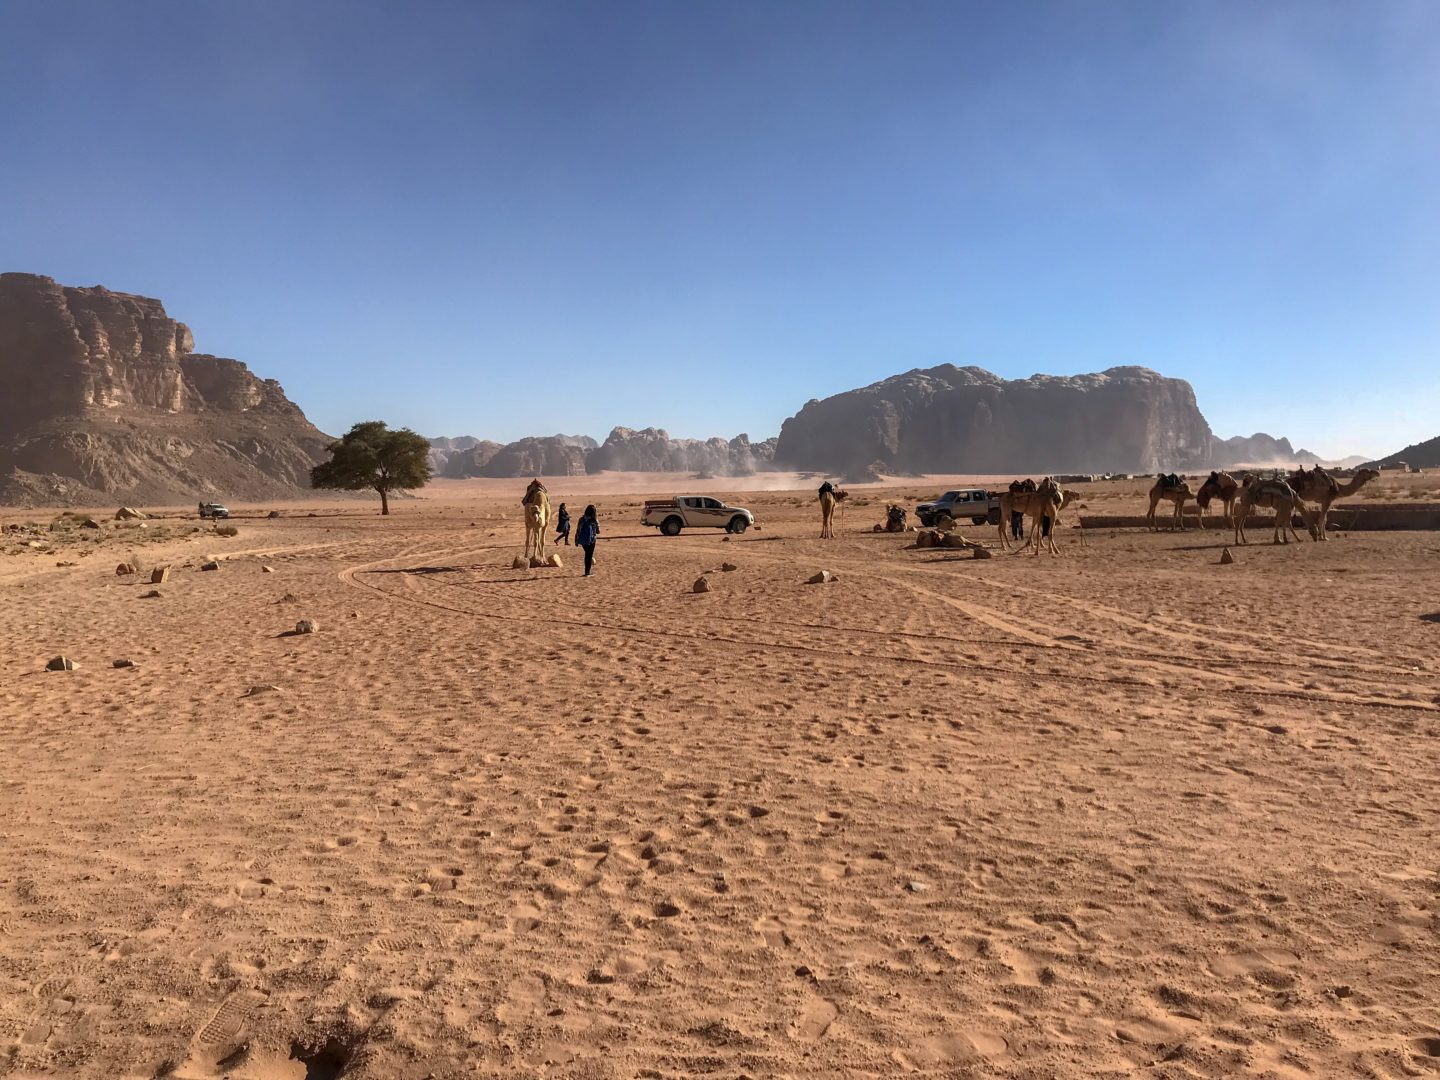 Camels tethered in the middle of Wadi Rum - Jordan Adventures Part 4 - Wadi Rum